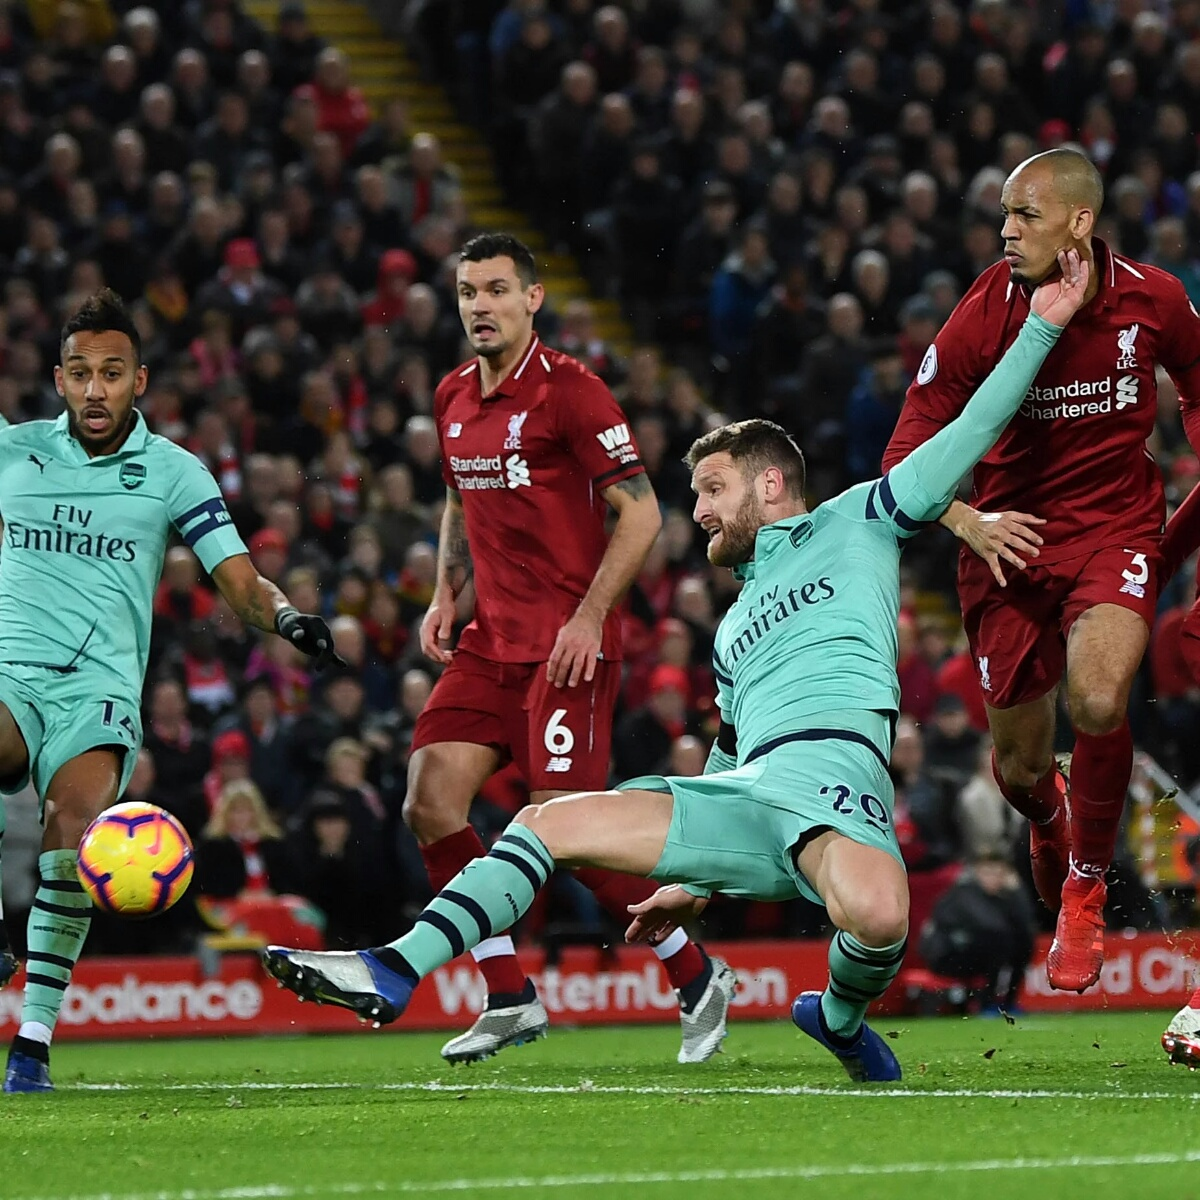 Twitter reacts as Liverpool thrash Arsenal 5-1 at Anfield Stadium